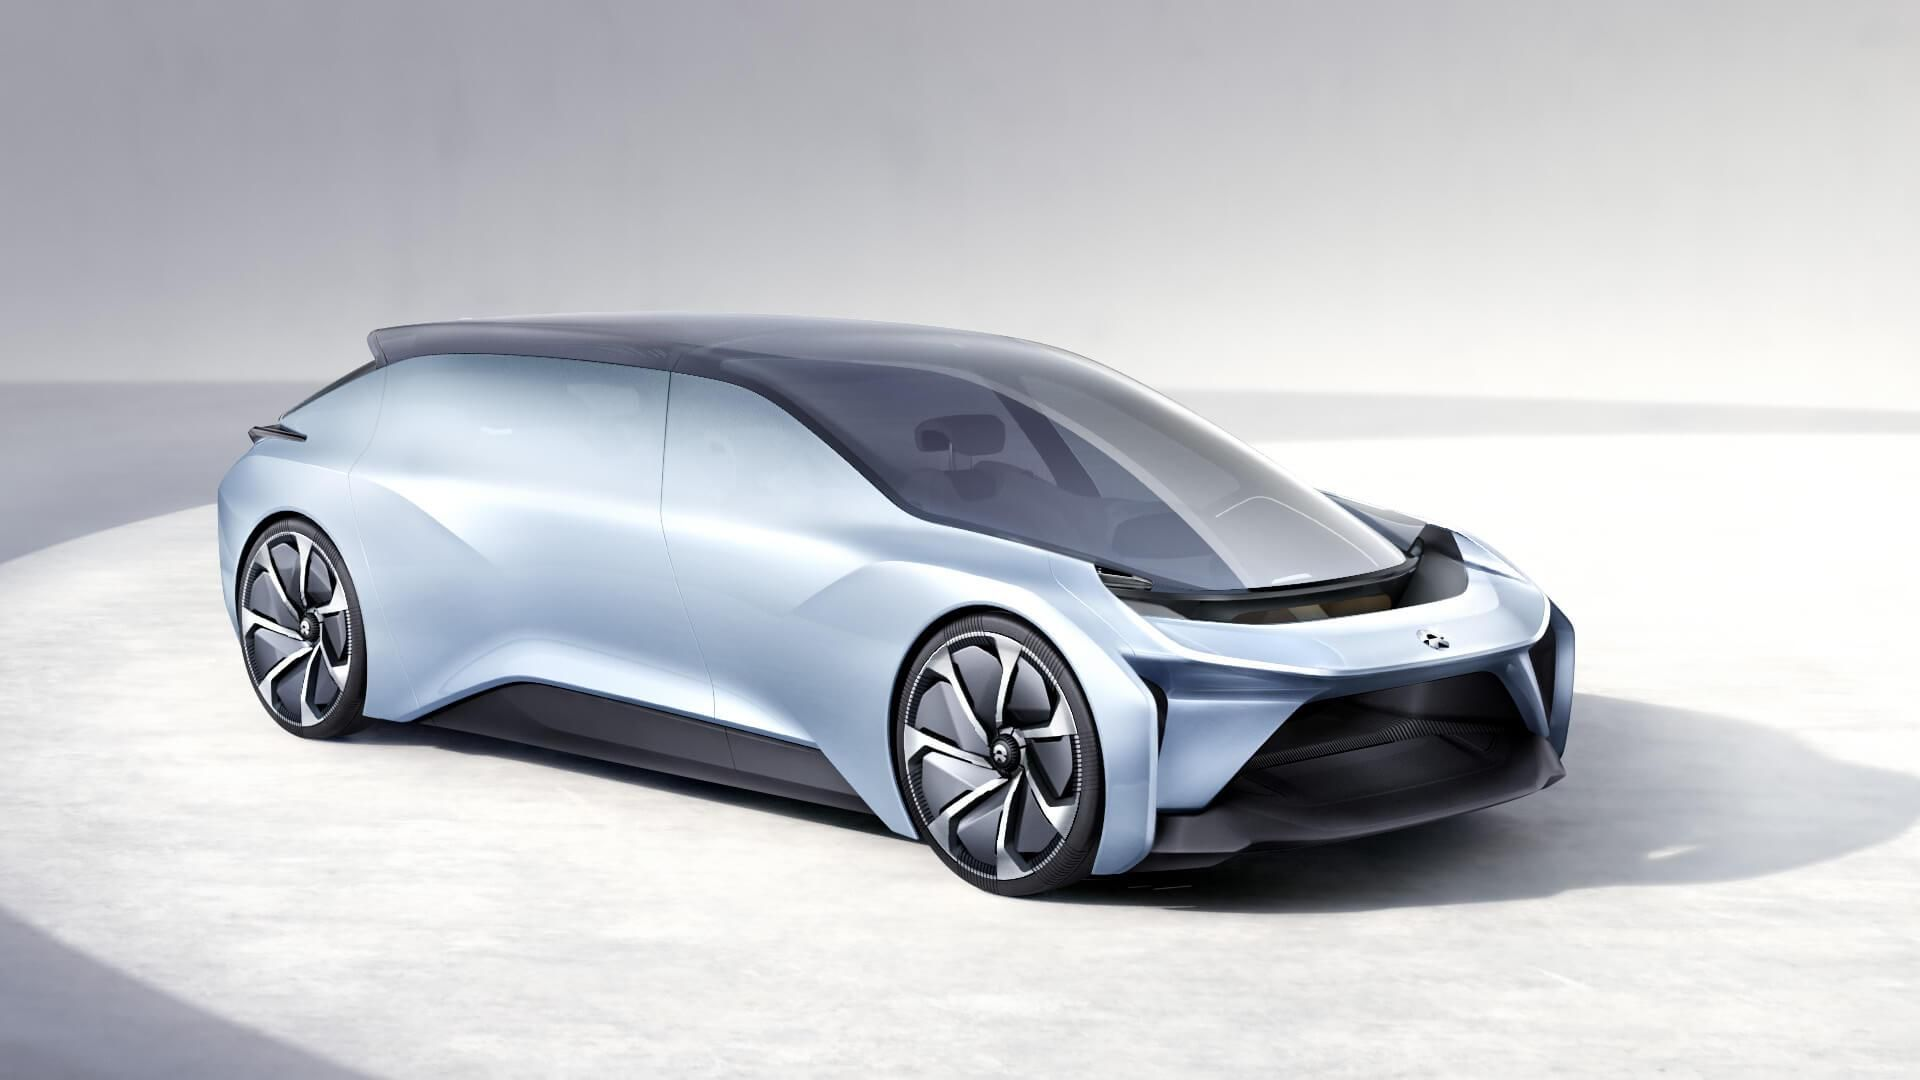 Nio Eve Concept Is Yet Another Chinese Luxury Electric Suv This One Autonomous Concept Cars Car Futuristic Cars